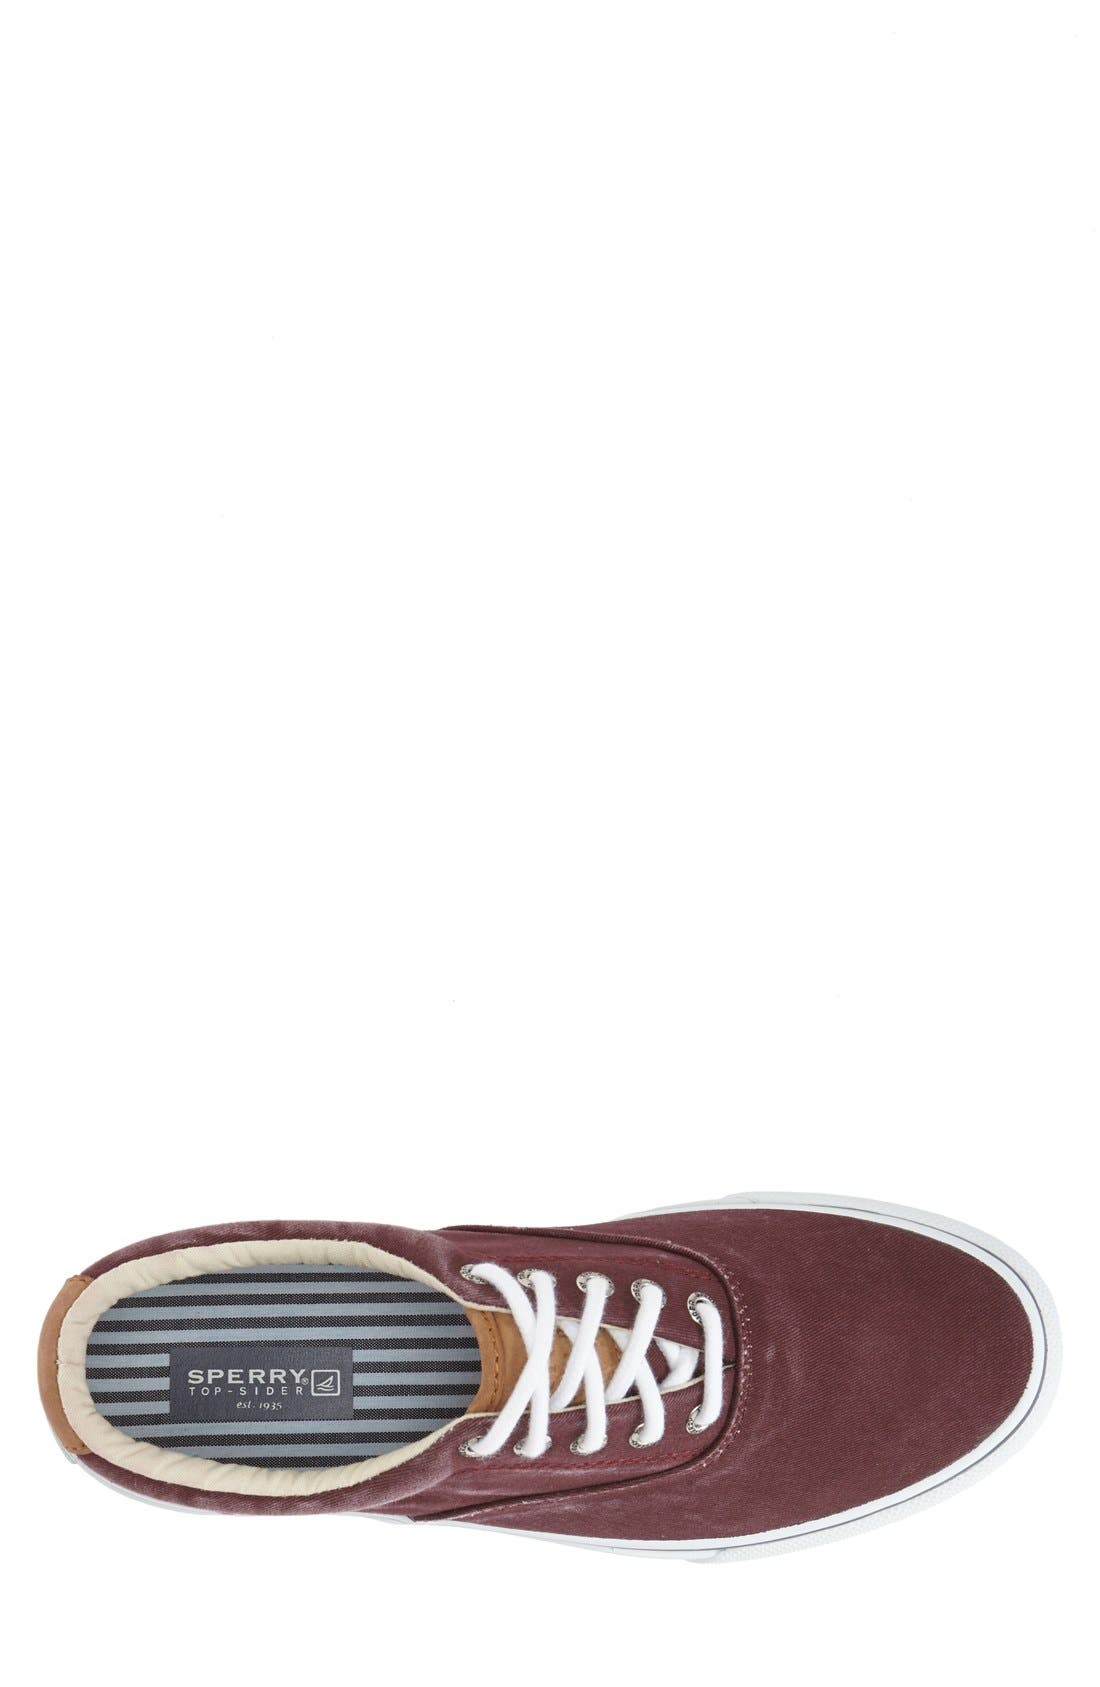 Alternate Image 3  - Sperry 'Striper CVO' Sneaker (Men)